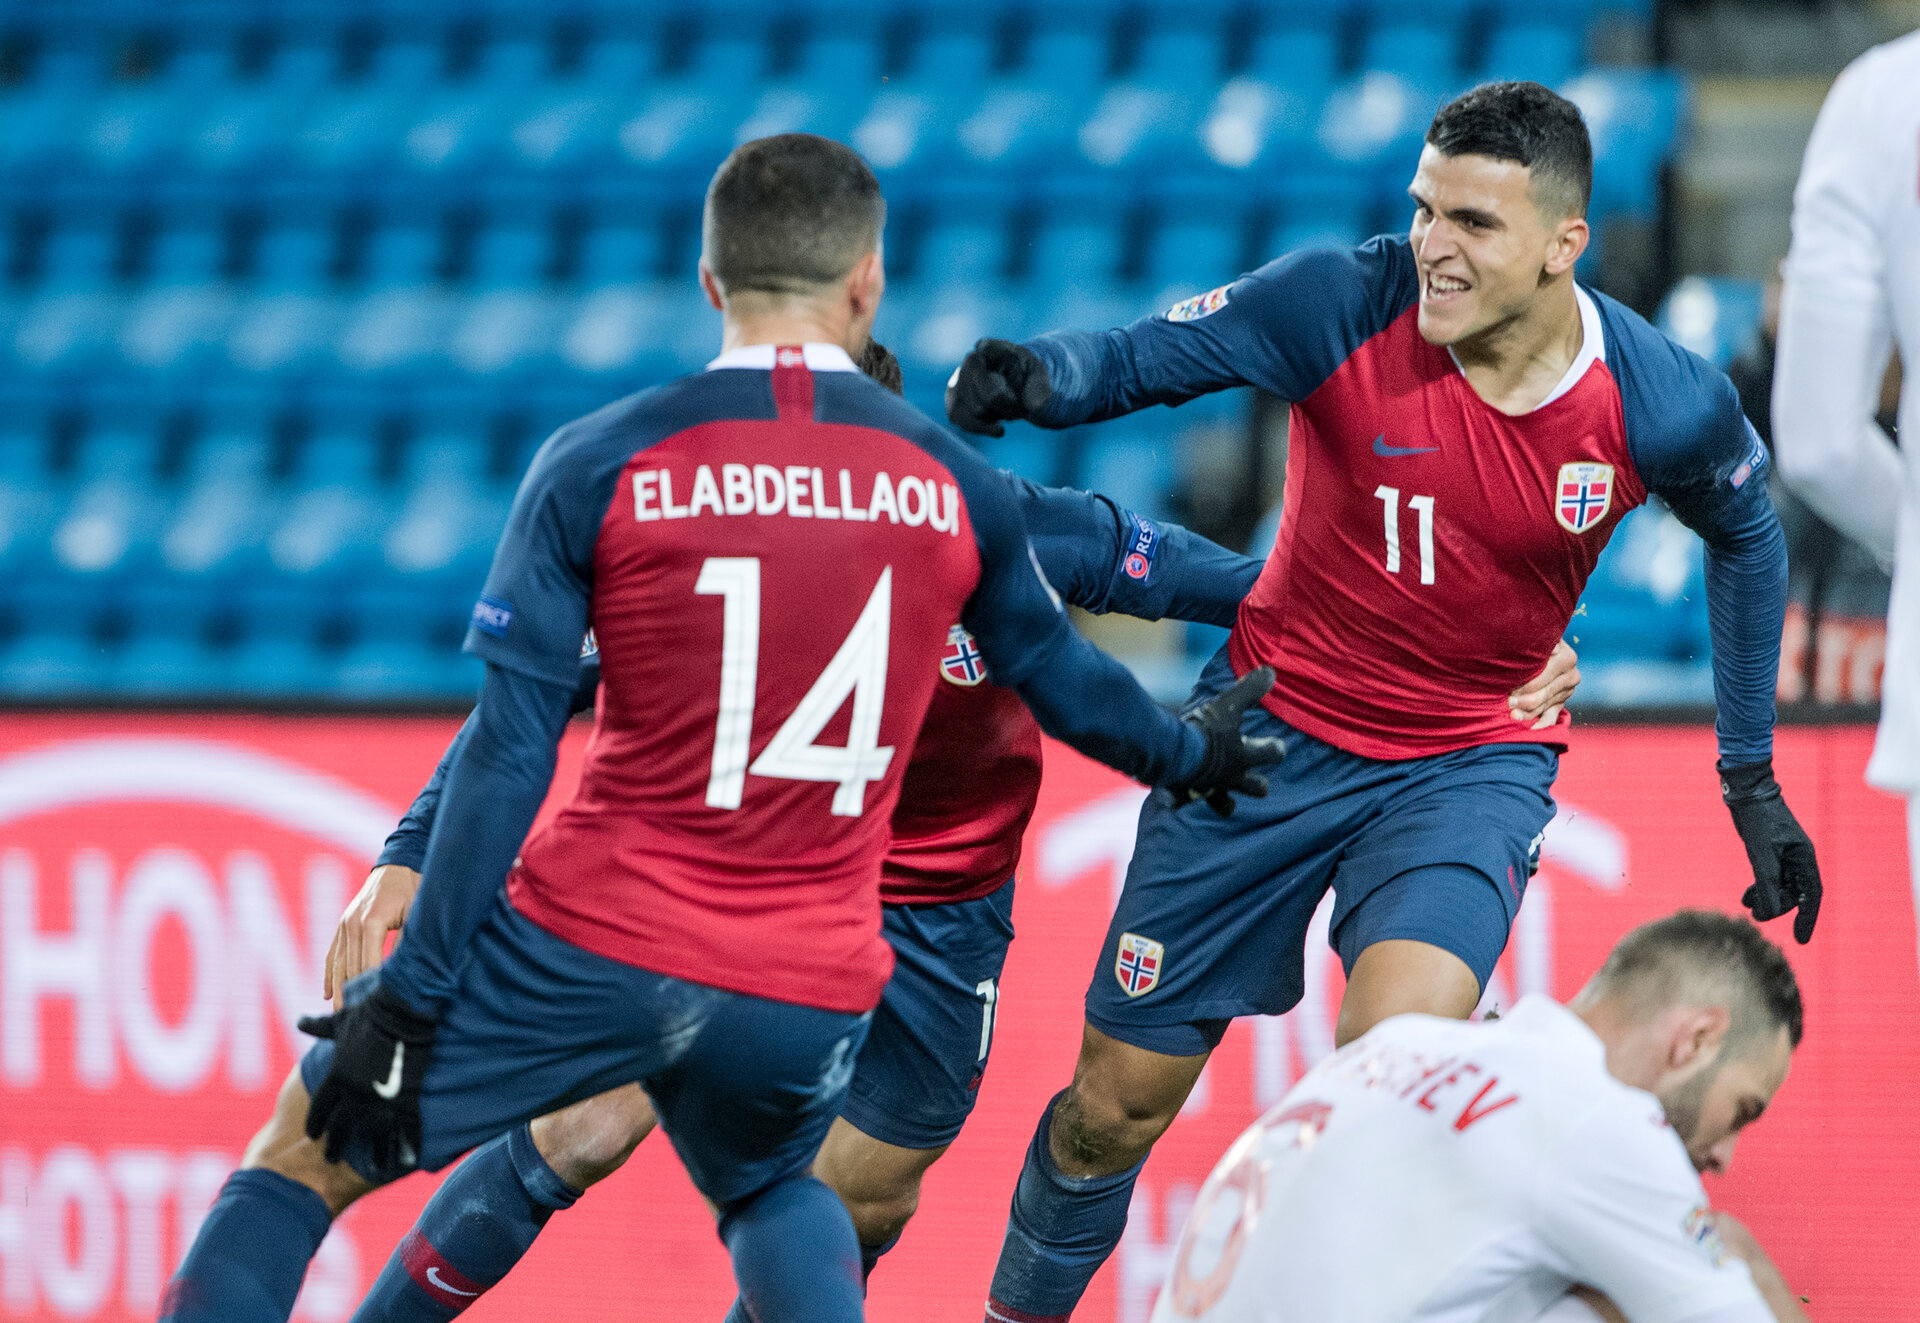 OSLO, NORWAY - OCTOBER 16: Omar Elabdellaoui, Mohammed Elyounoussi of Norway celebrates goal during the UEFA Nations League C group three match between Norway and Bulgaria at Ullevaal Stadion on October 16, 2018 in Oslo, Norway. (Photo by Trond Tandberg/Getty Images)